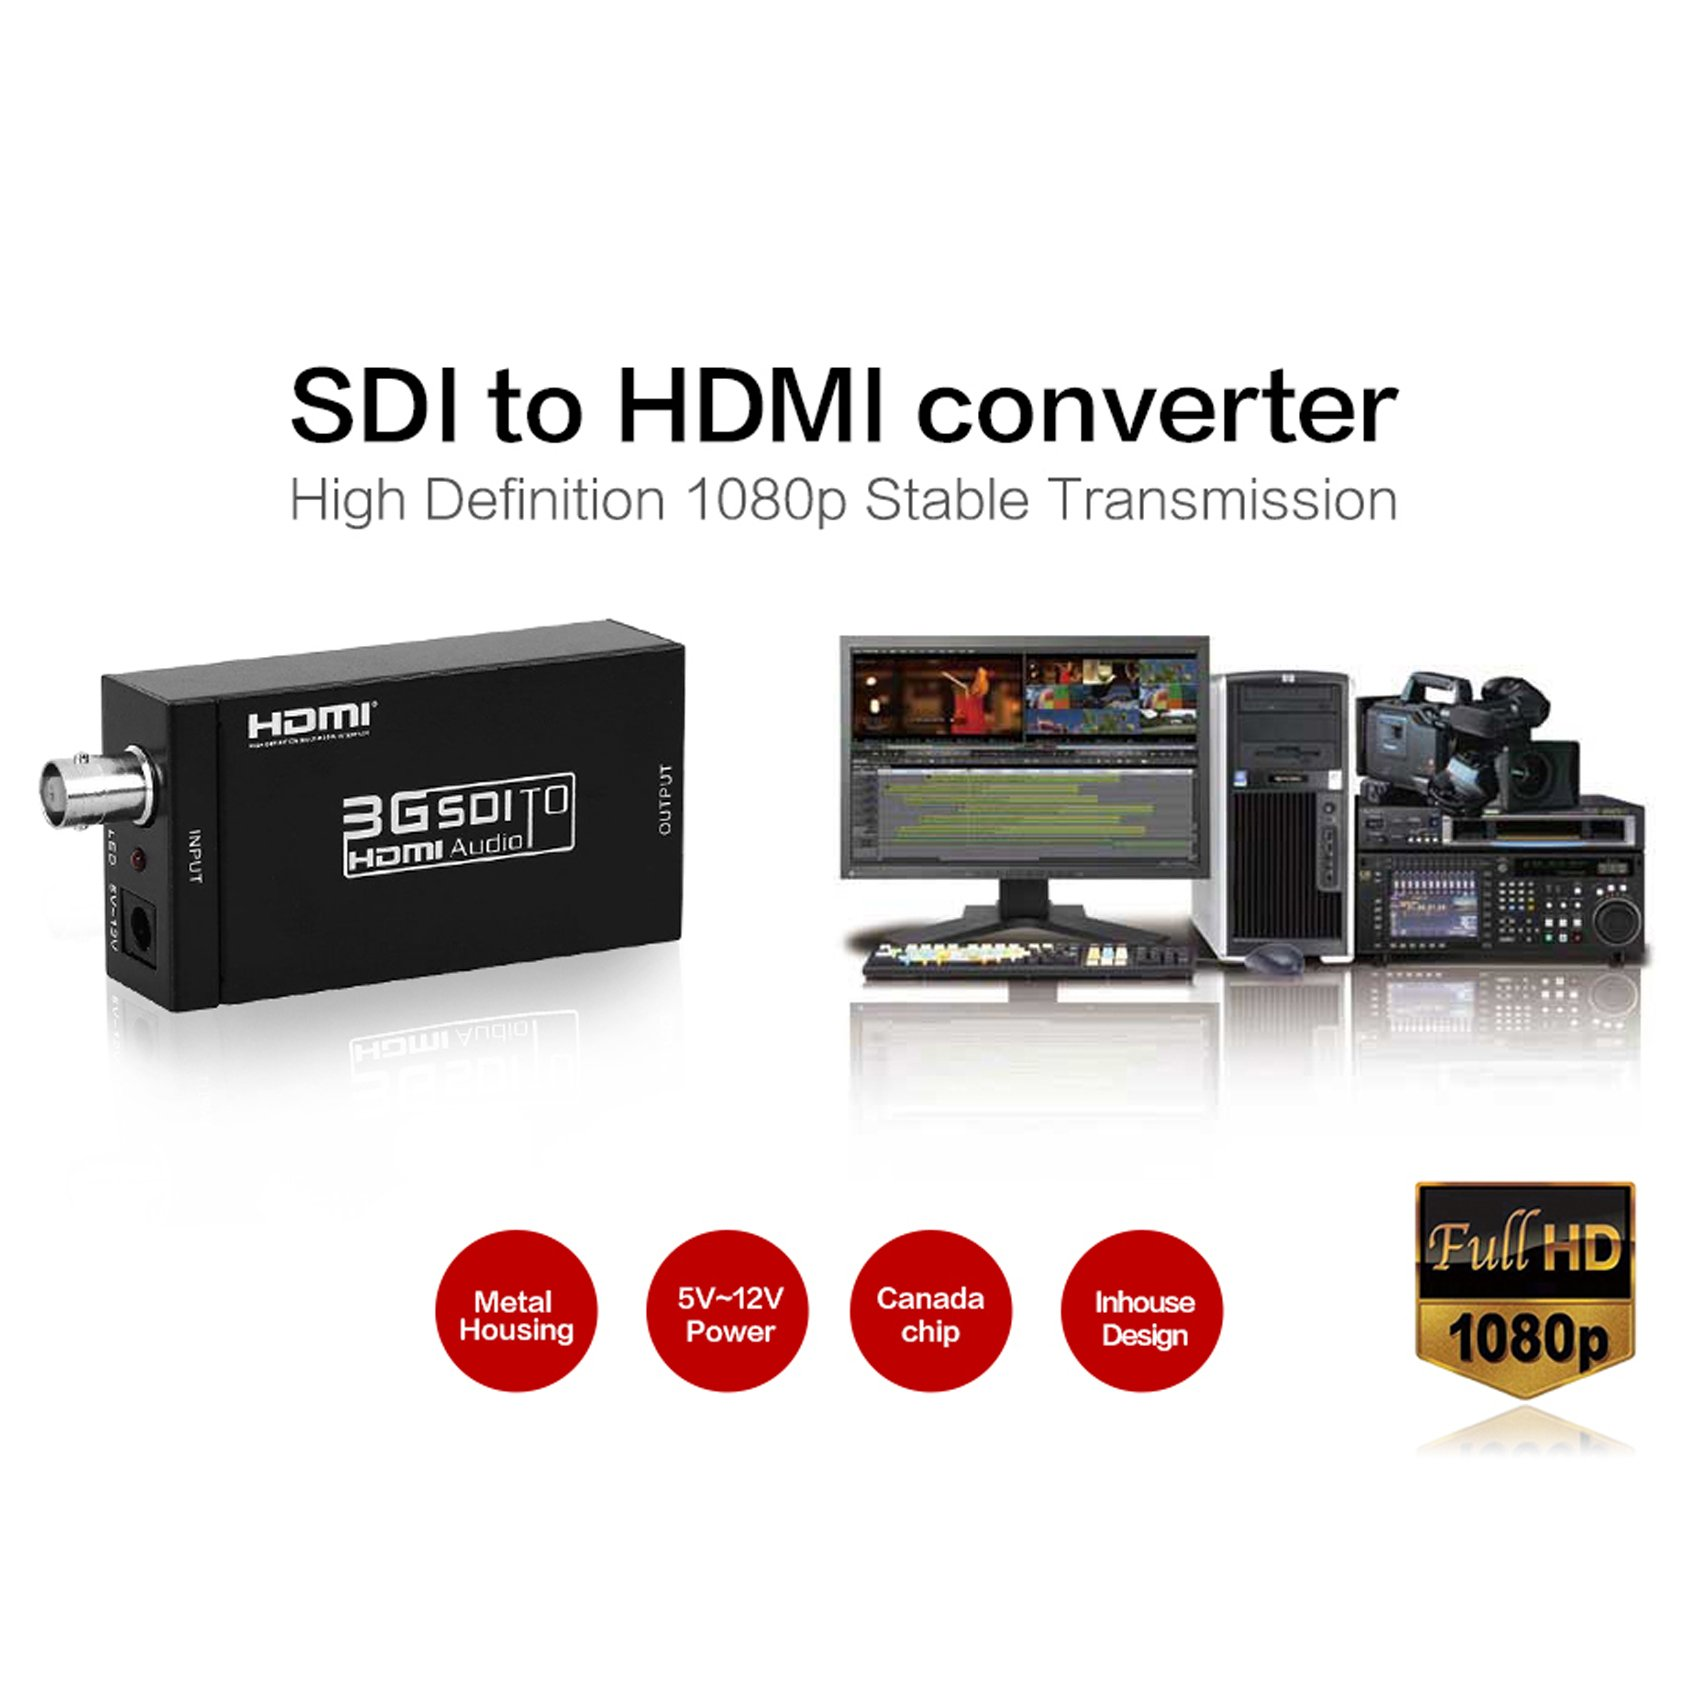 Basicolor SDI to HDMI Converter Mini 3G SDI HDMI Adapter with BNC Coaxical Support Full HD 1080p SD-SDI/HD-SDI/3G-SDI to HDMI Adapter Mini HD Video Convert for Camera PC Home Theater (Black) by Basicolor (Image #1)